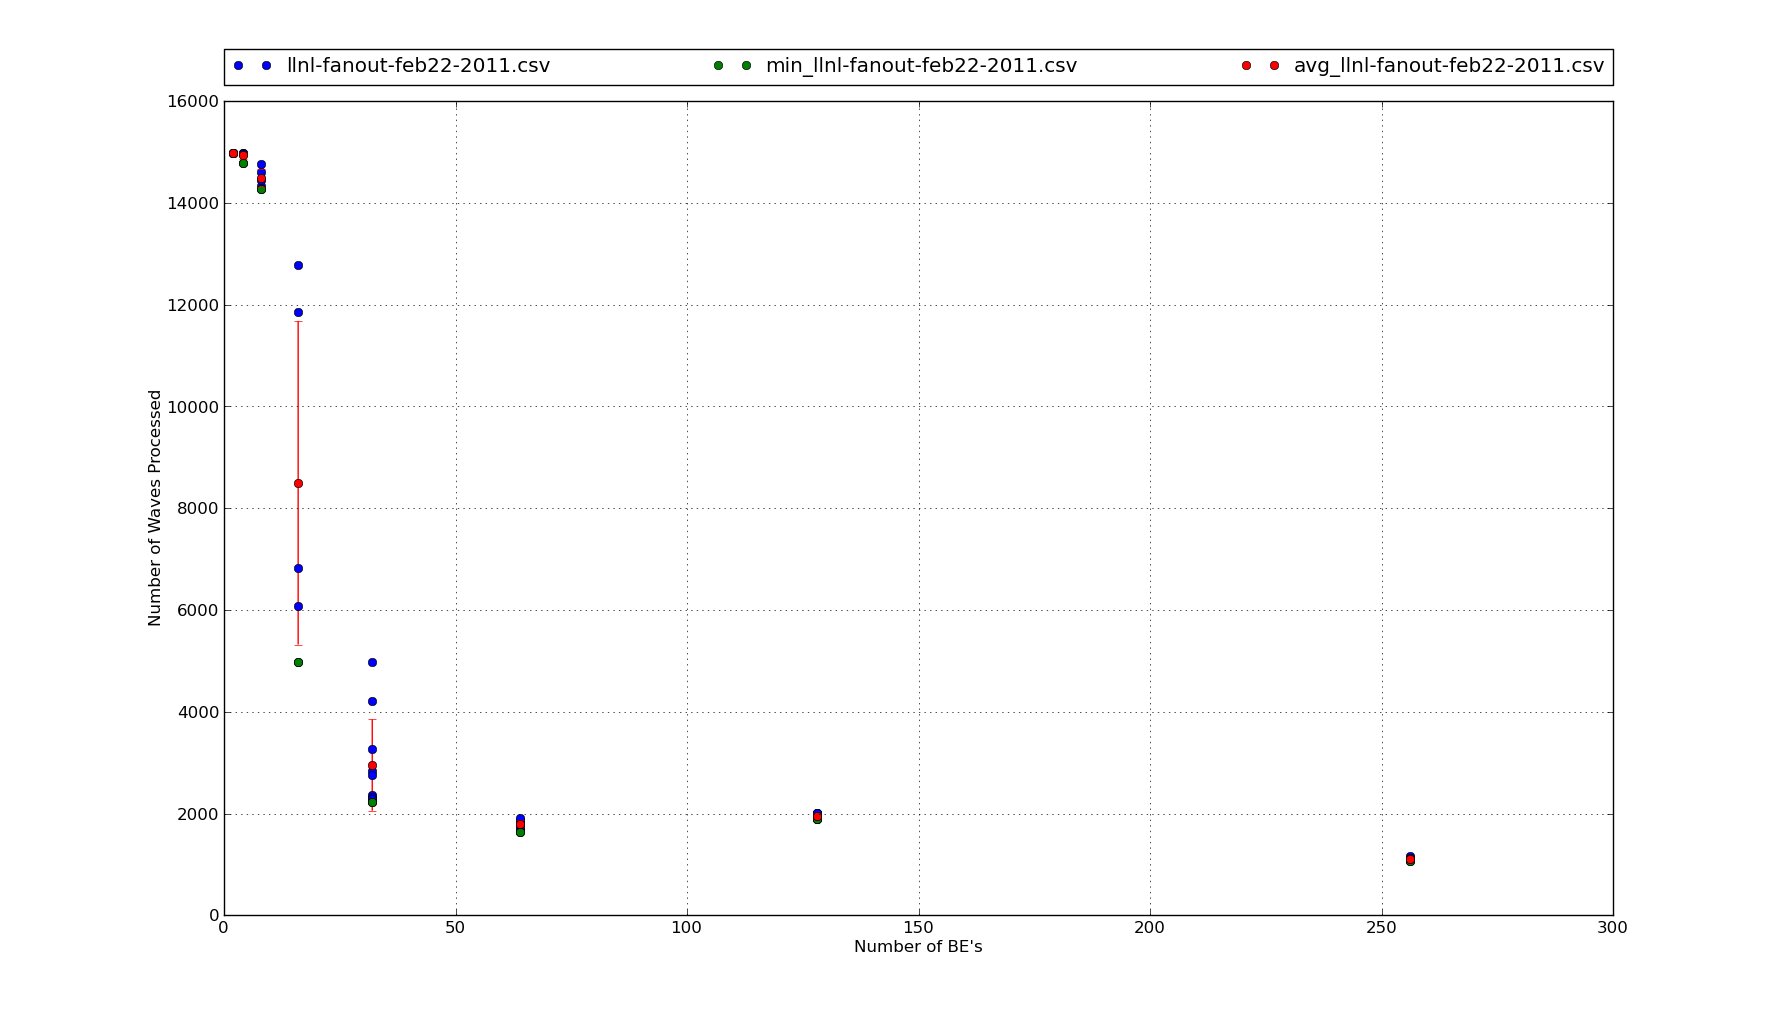 6 Tmail My E Mail In Form 1 Wikisysop 20090811165911 0 31 Original File Svg Nominally 573 X 444 Pixels Size Agglat Eq Frequency Atlas Feb22 2011